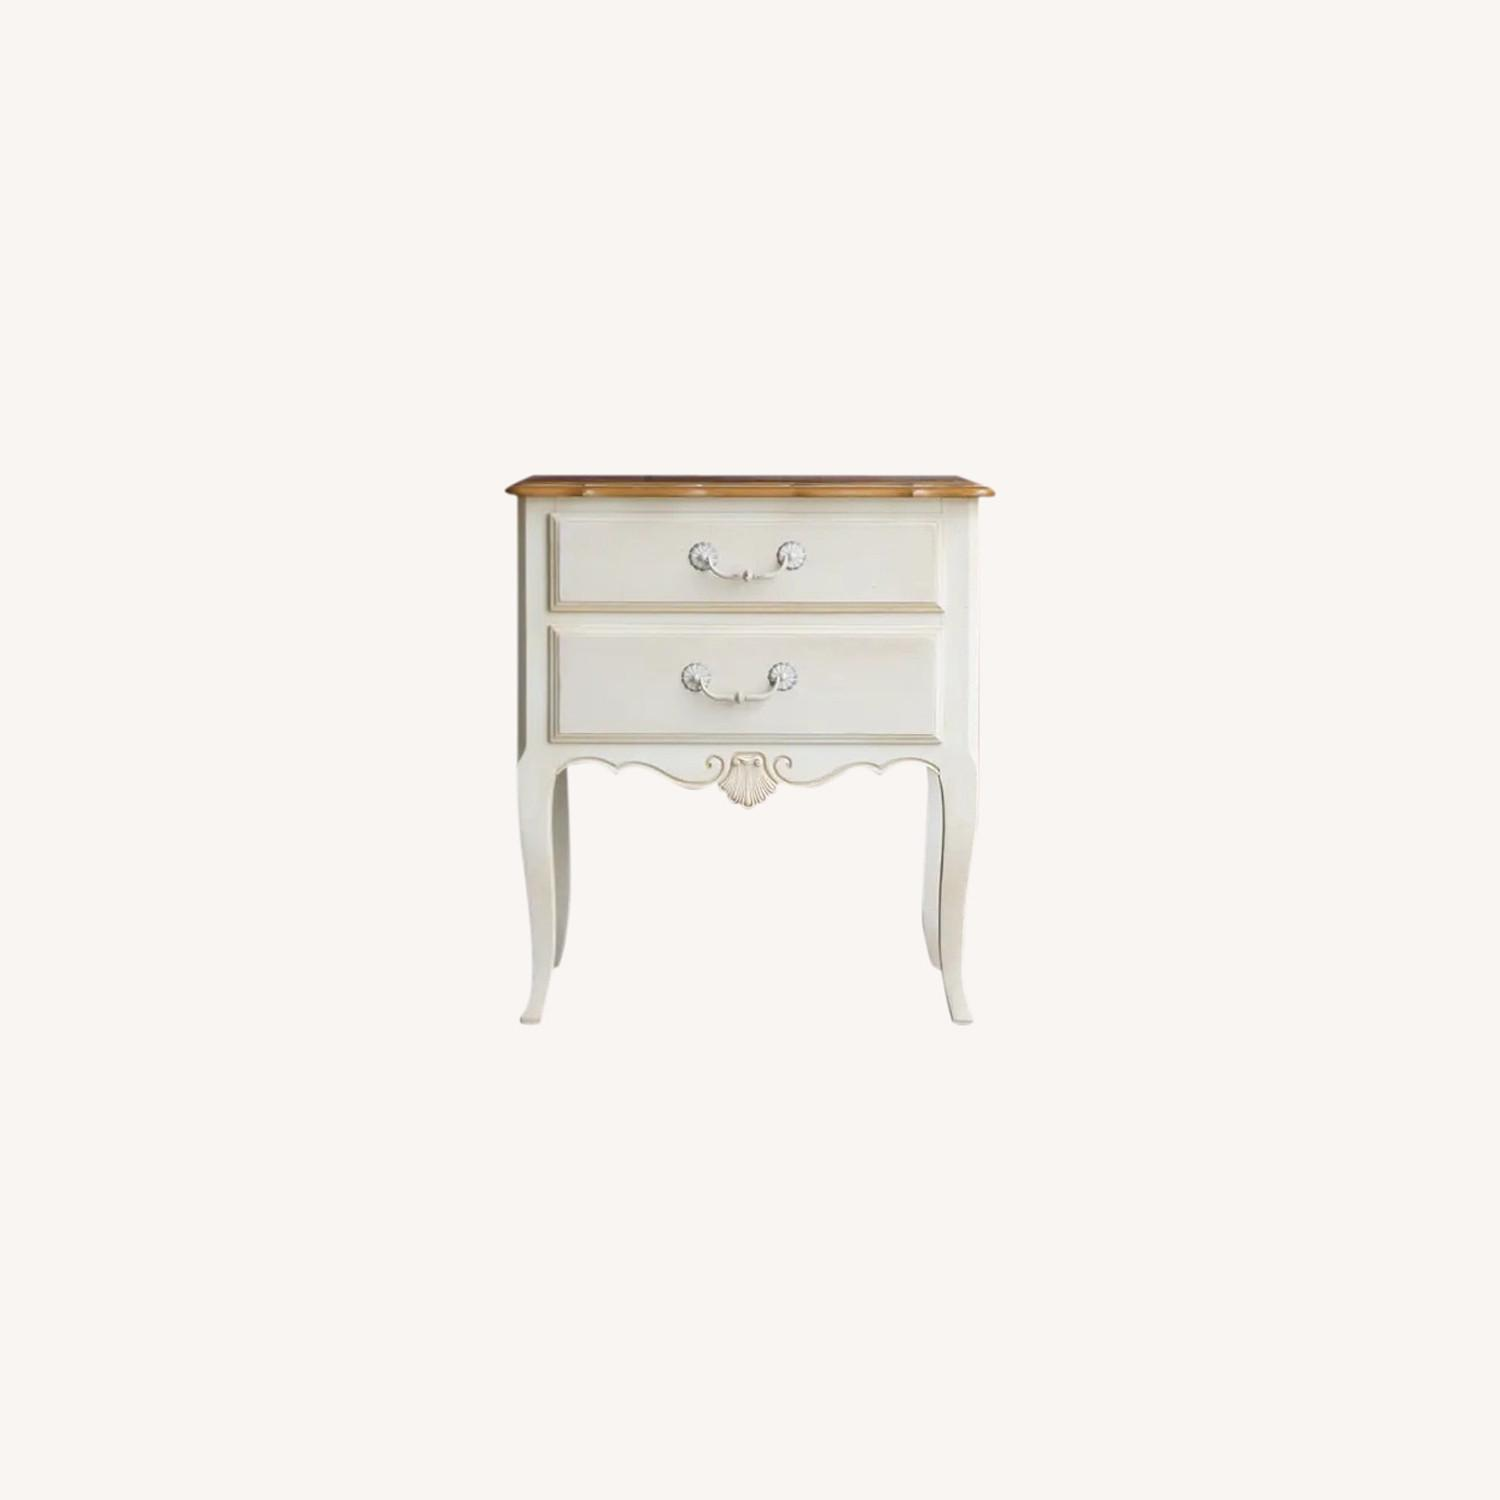 Ethan Allen Country French Nightstands - image-0